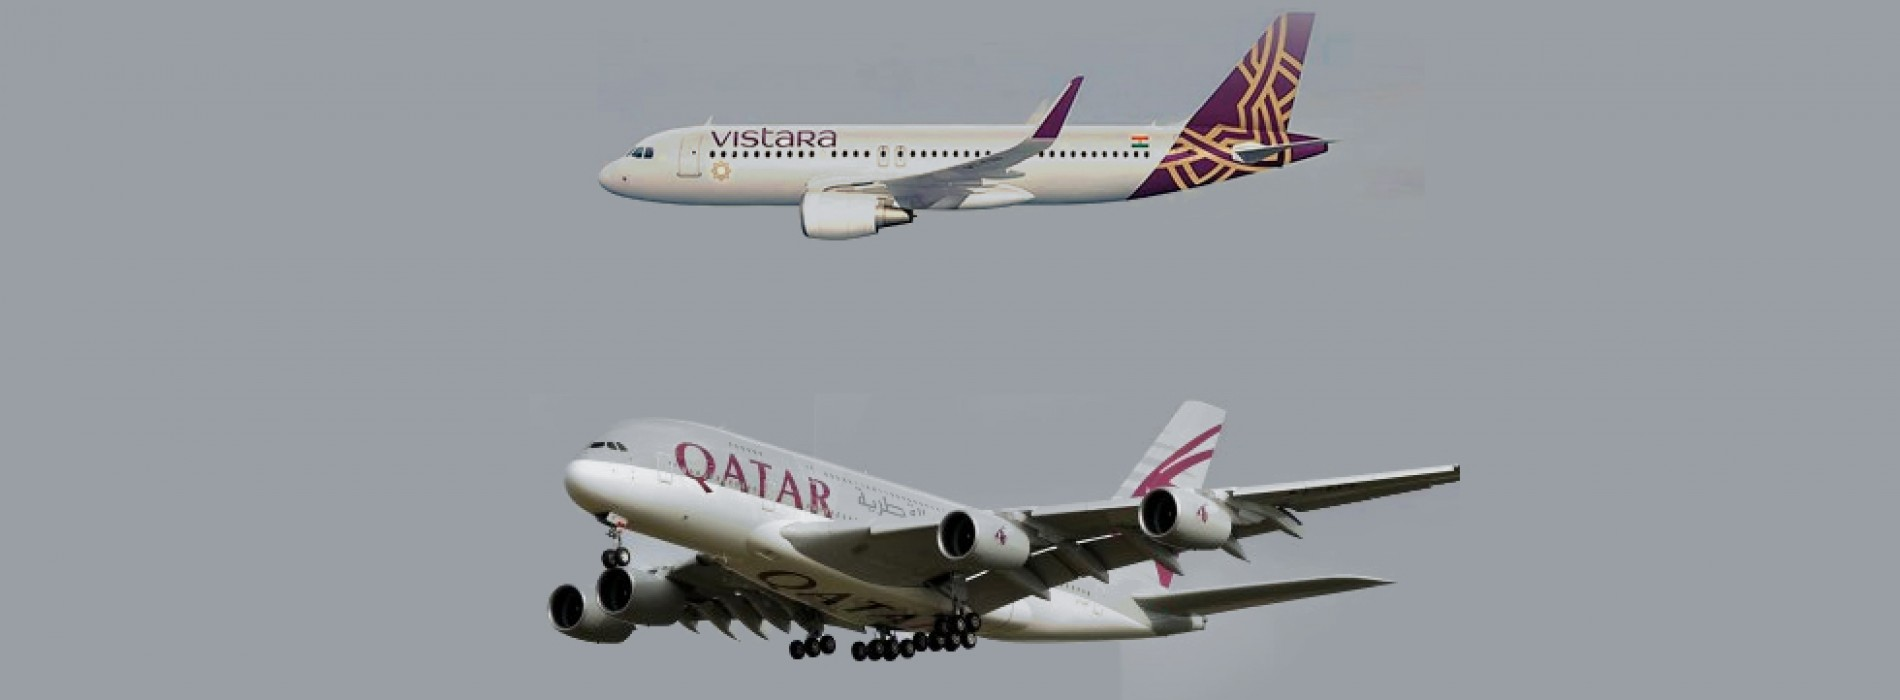 Qatar Airways and Vistara in interline partnership pact